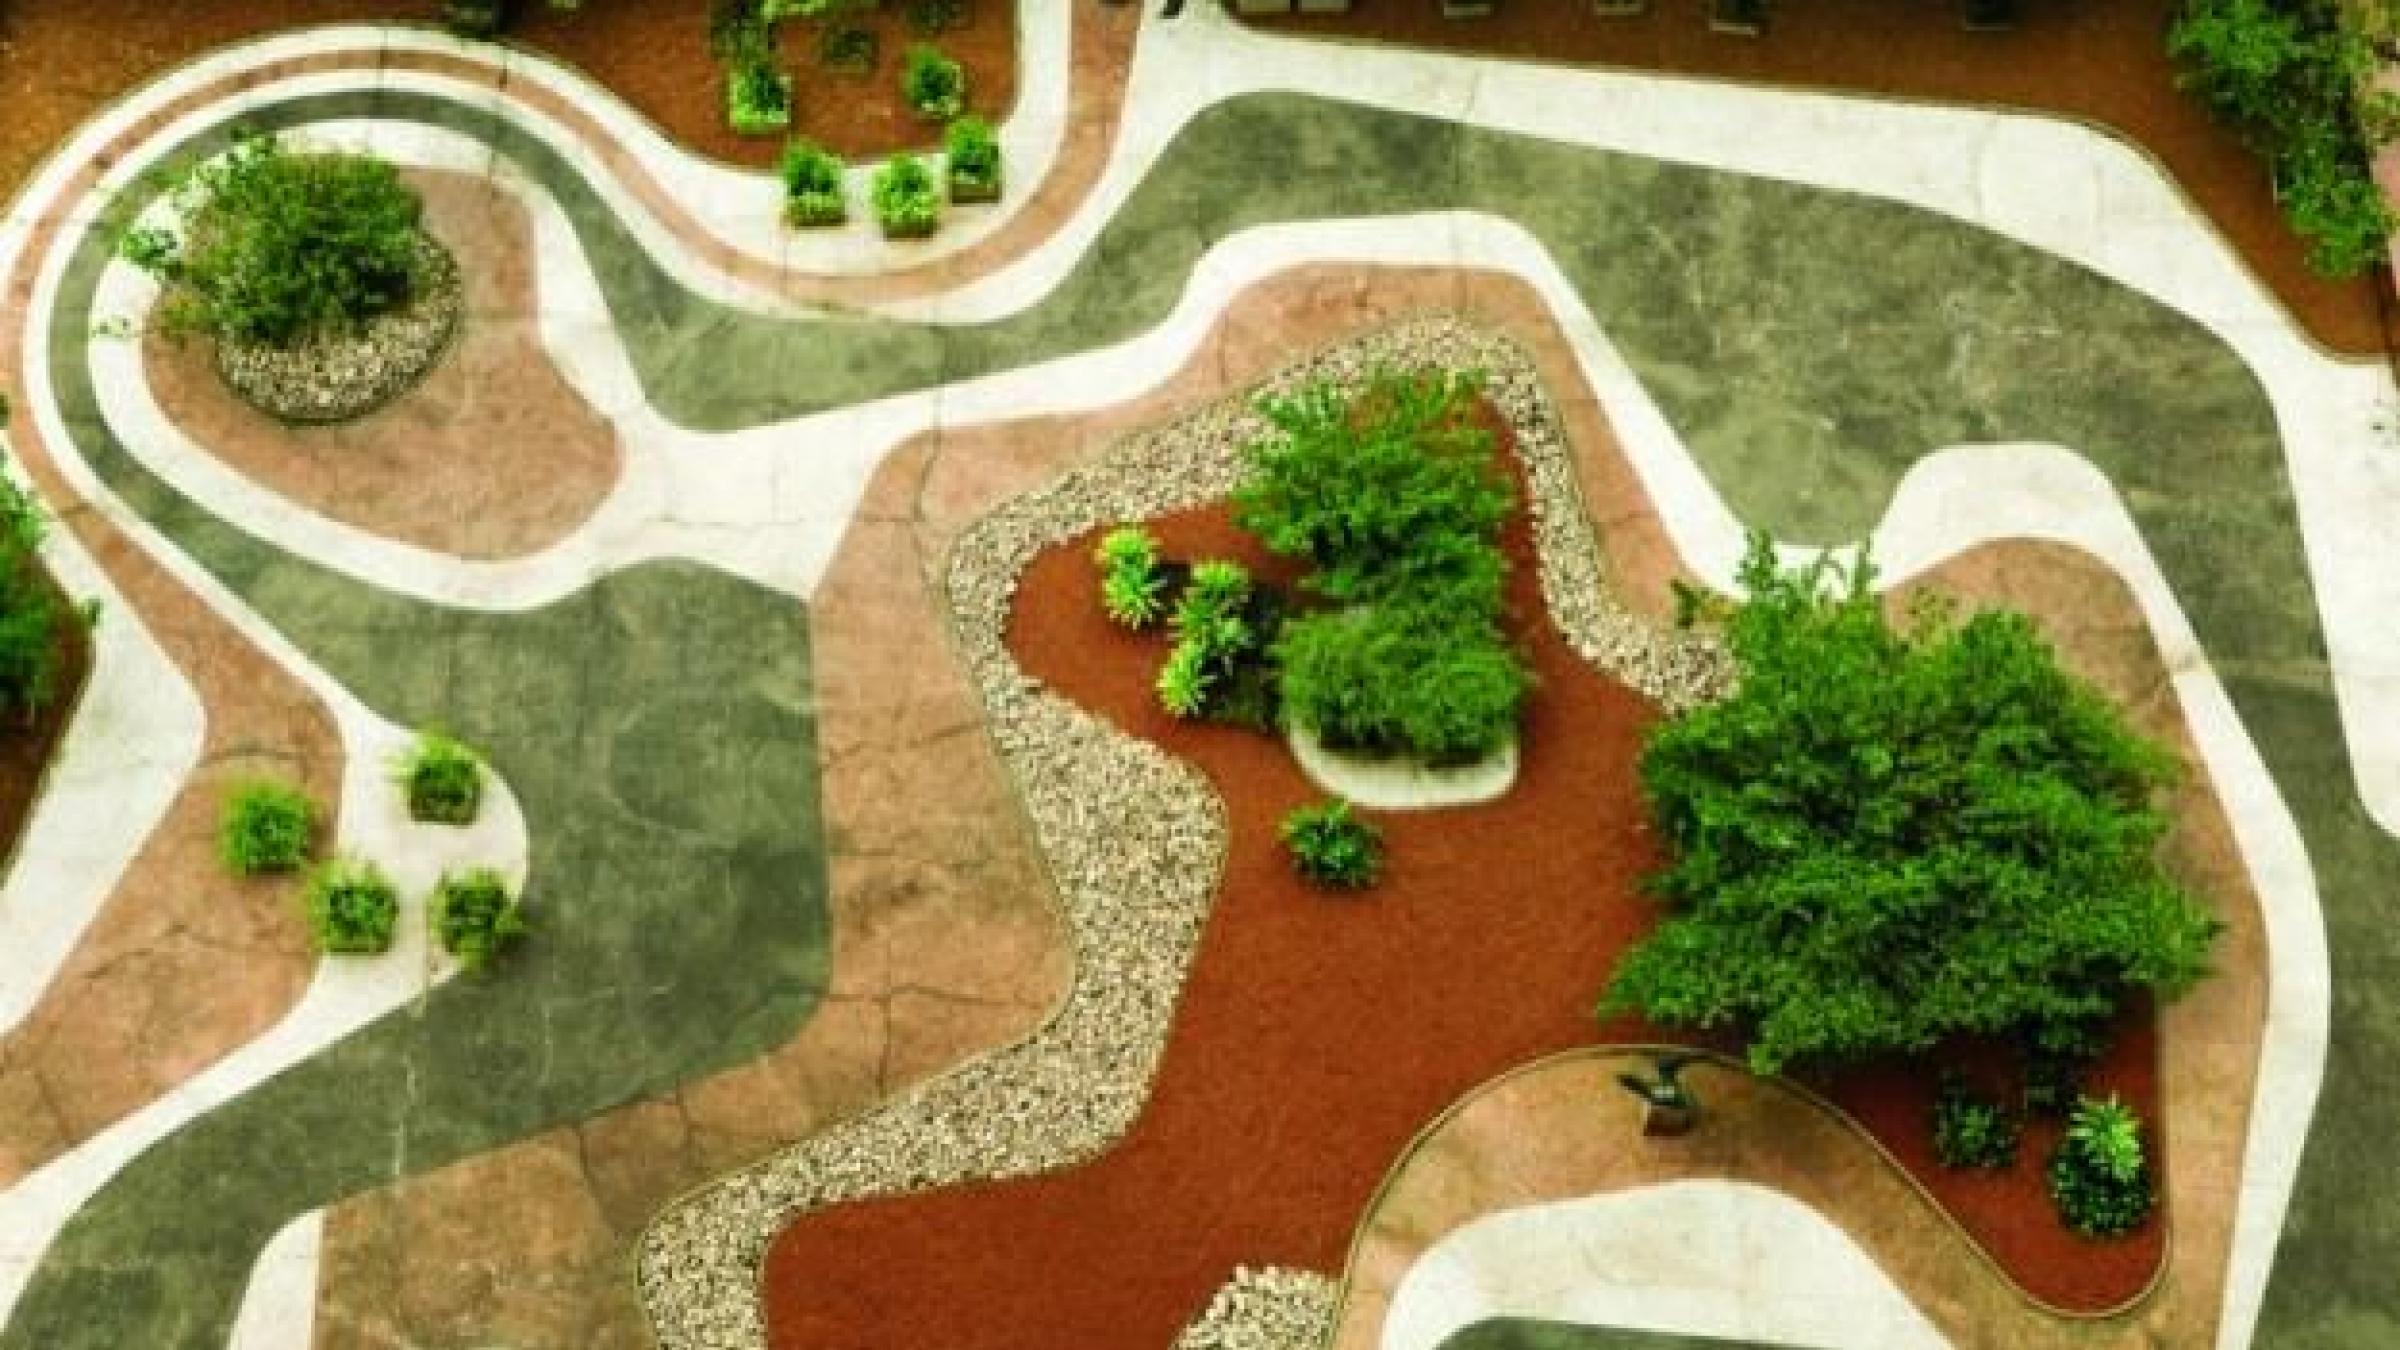 Seeding Lost Paradise The Gardens Of Burle Marx Screening